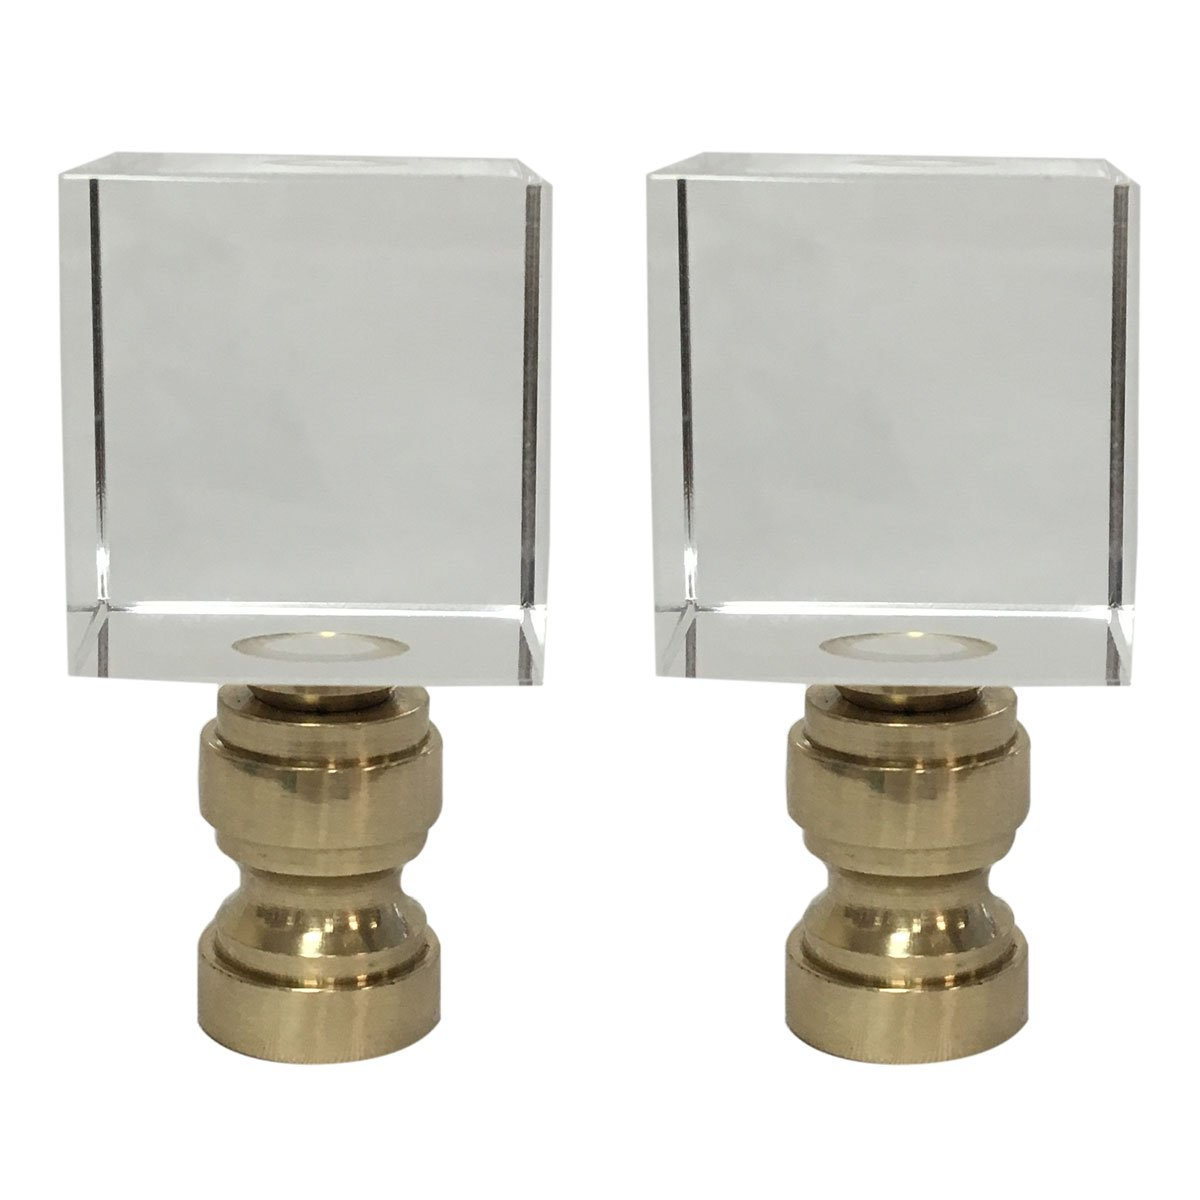 Royal Designs Clear Cube K9 Crystal Lamp Finial with Polished Brass Base - Set of 2 by Royal Designs, Inc (Image #1)